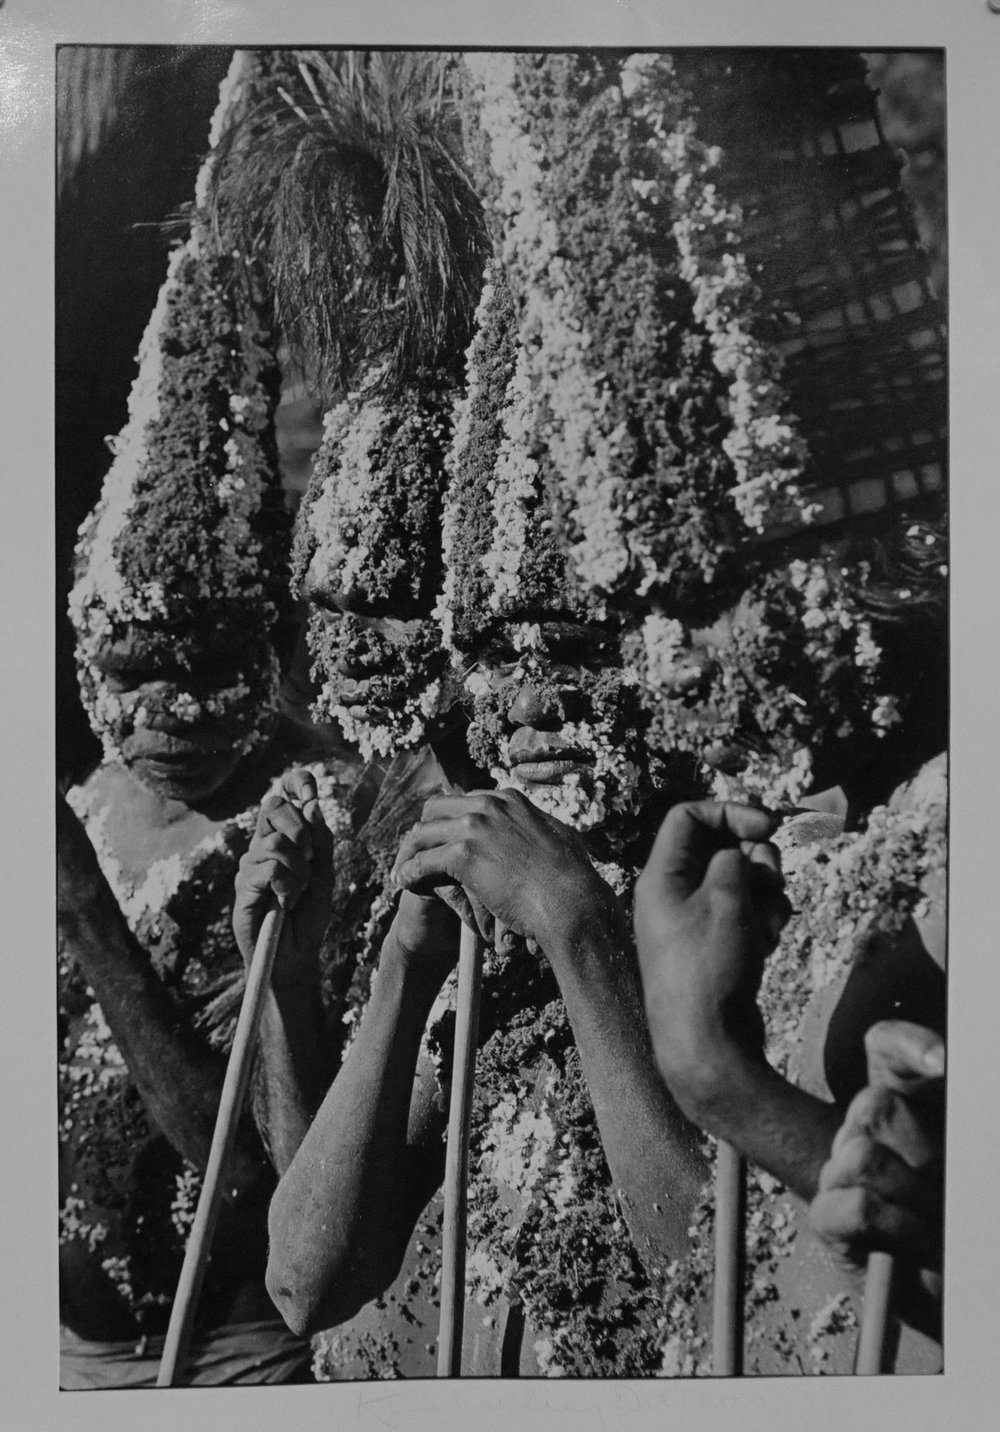 24. Richard Woldendorp, 'Halls Creek Ceremonial Dancers, Festival of Perth, Subiaco WA', BW156a, taken and printed in c.1970, Vintage Print